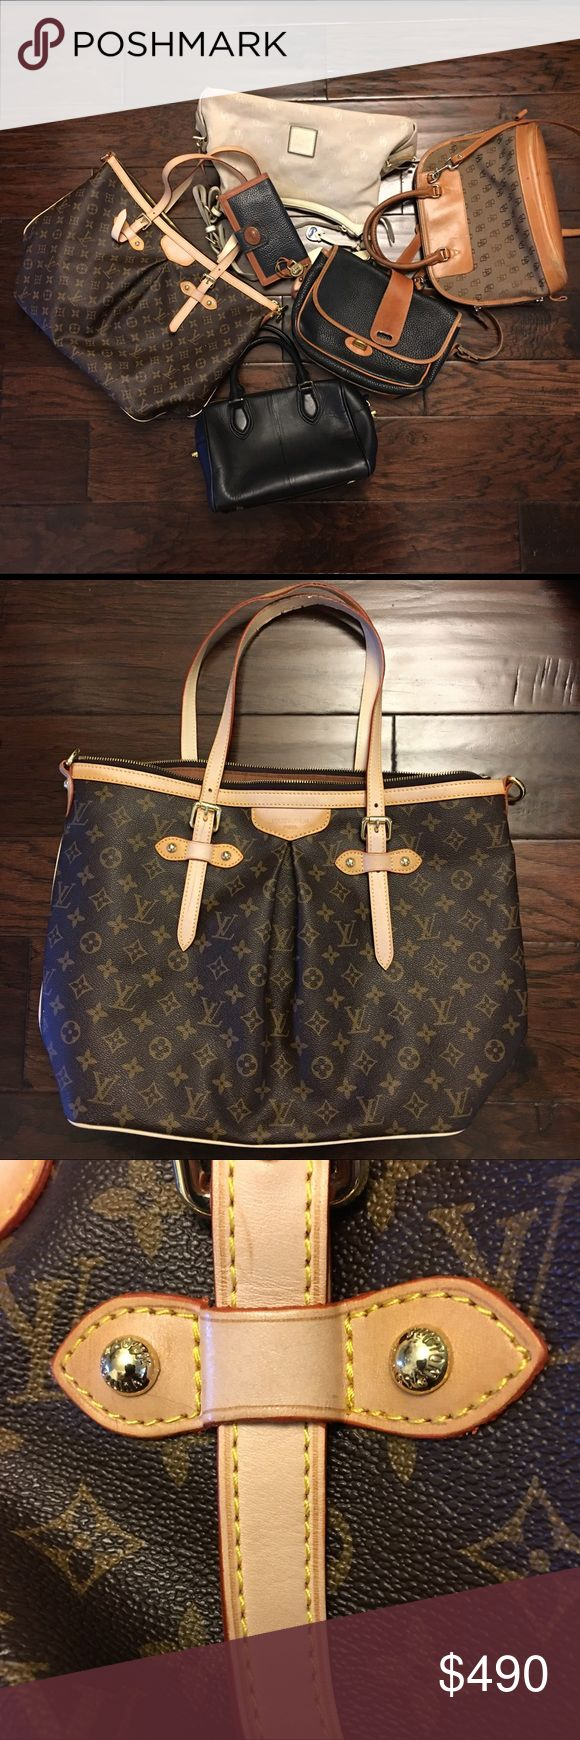 Lot Of 1 LV, 4 Bags Dooney & Bourke, 1 Bag J.crew Lot of 1 Louis Vuitton purse, 3 Dooney&Bourke purses, 1 D&B wallet, 1 J.Crew purse.  100% Authentic D&B Bags. Made in USA and 1 in China. The bags have had some use and the brown D&B bag does have ink markings inside; however, the outside is in good condition.  100% Authentique J.Crew Bag. Made in China. Inside and outside is clean.  Louis Vuitton (not sure of authenticity) - Date code 136098 - Made in France. Inside the bag is clean. Strap…